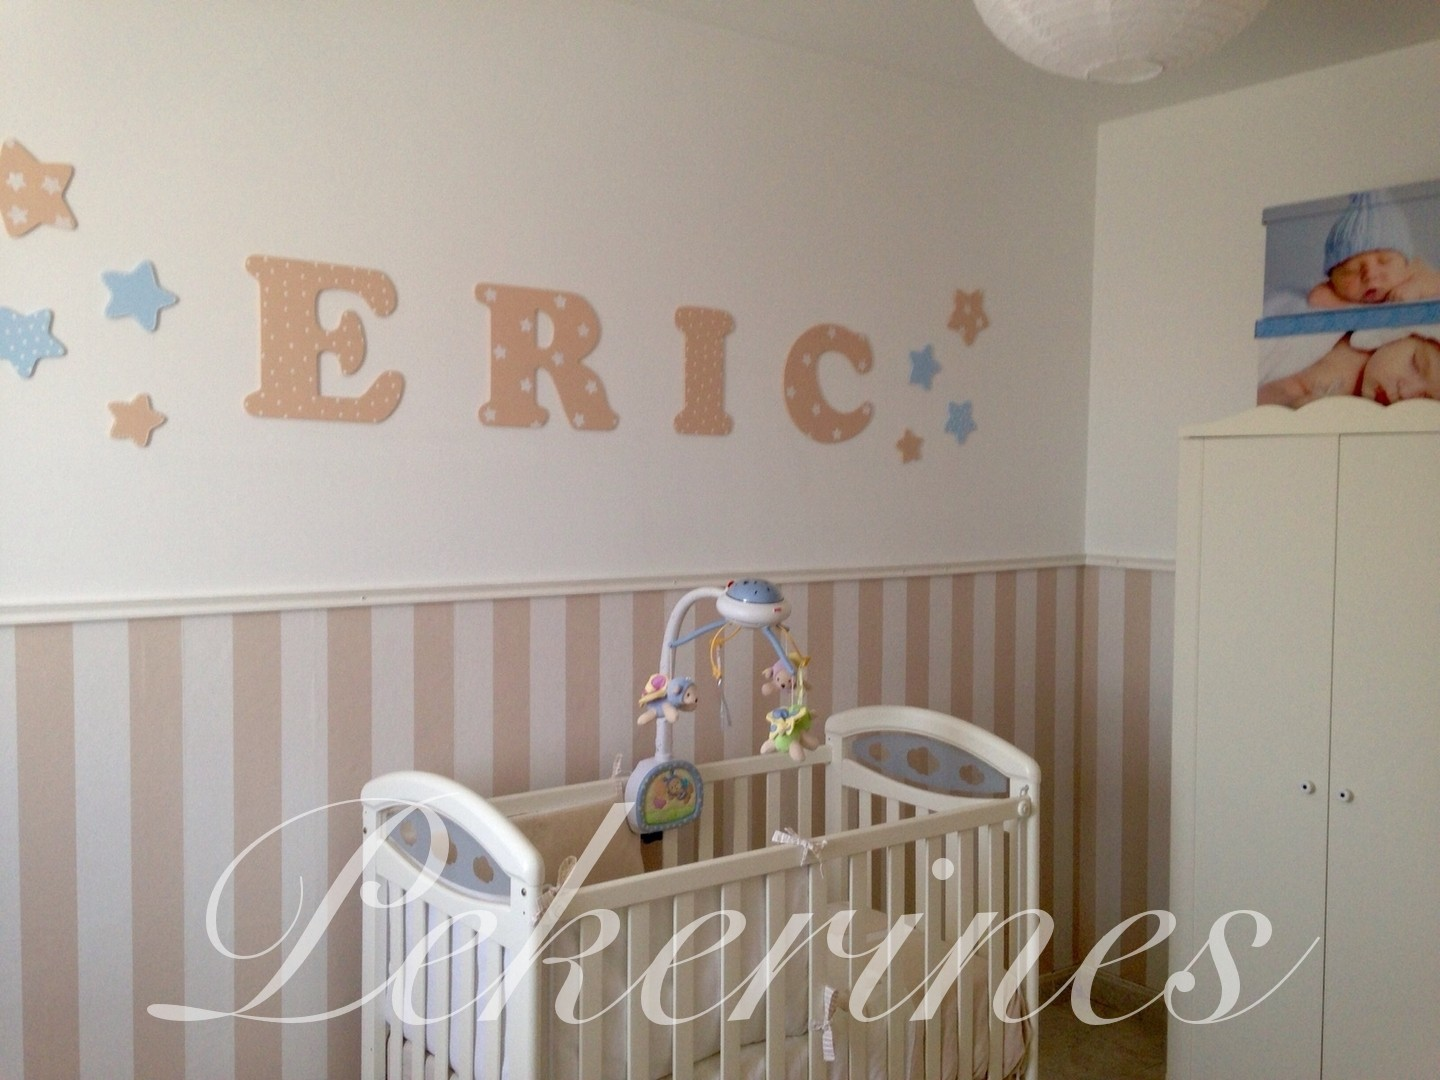 Decoraci n infantil pekerines letras de madera para decorar - Letras de decoracion ...